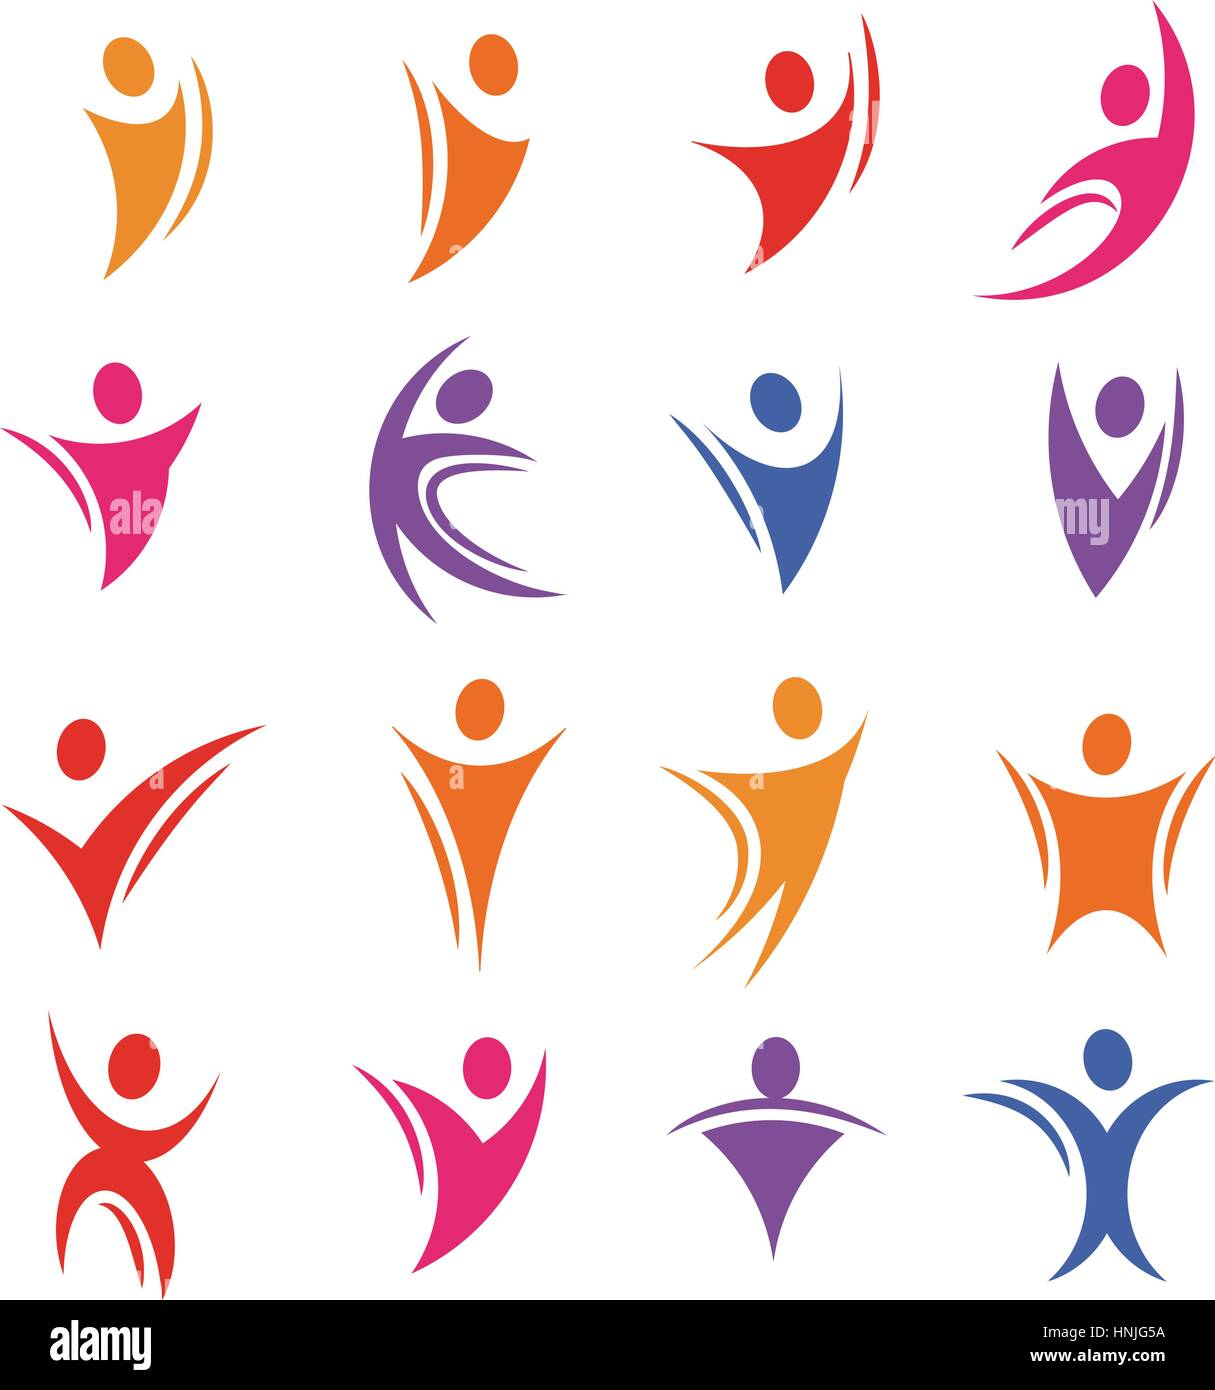 Isolated colorful abstract human body silhouette logos set vector illustration. - Stock Image